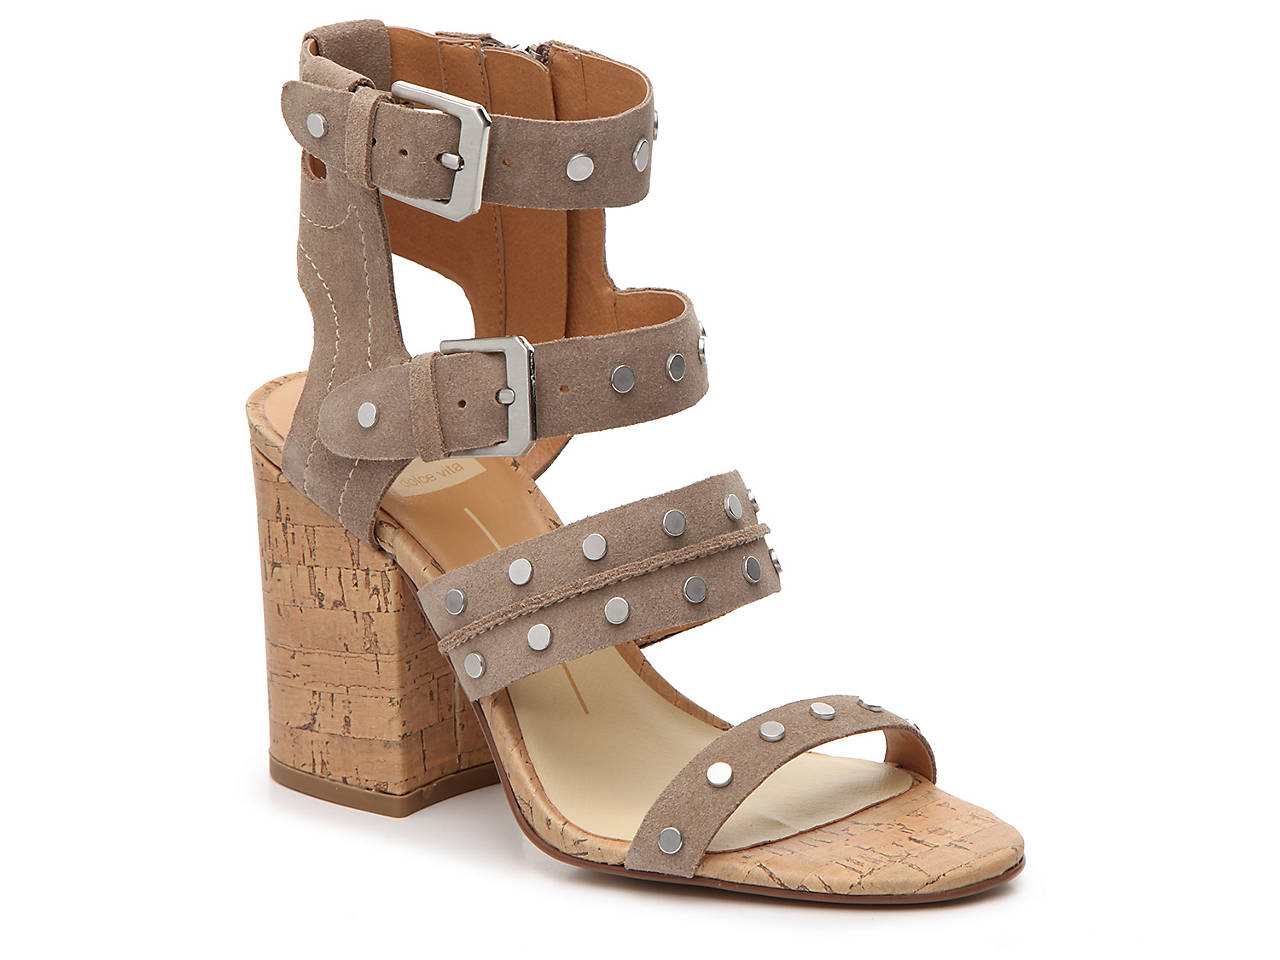 5107d37c4872 Dolce Vita Eddie Sandal Women s Shoes